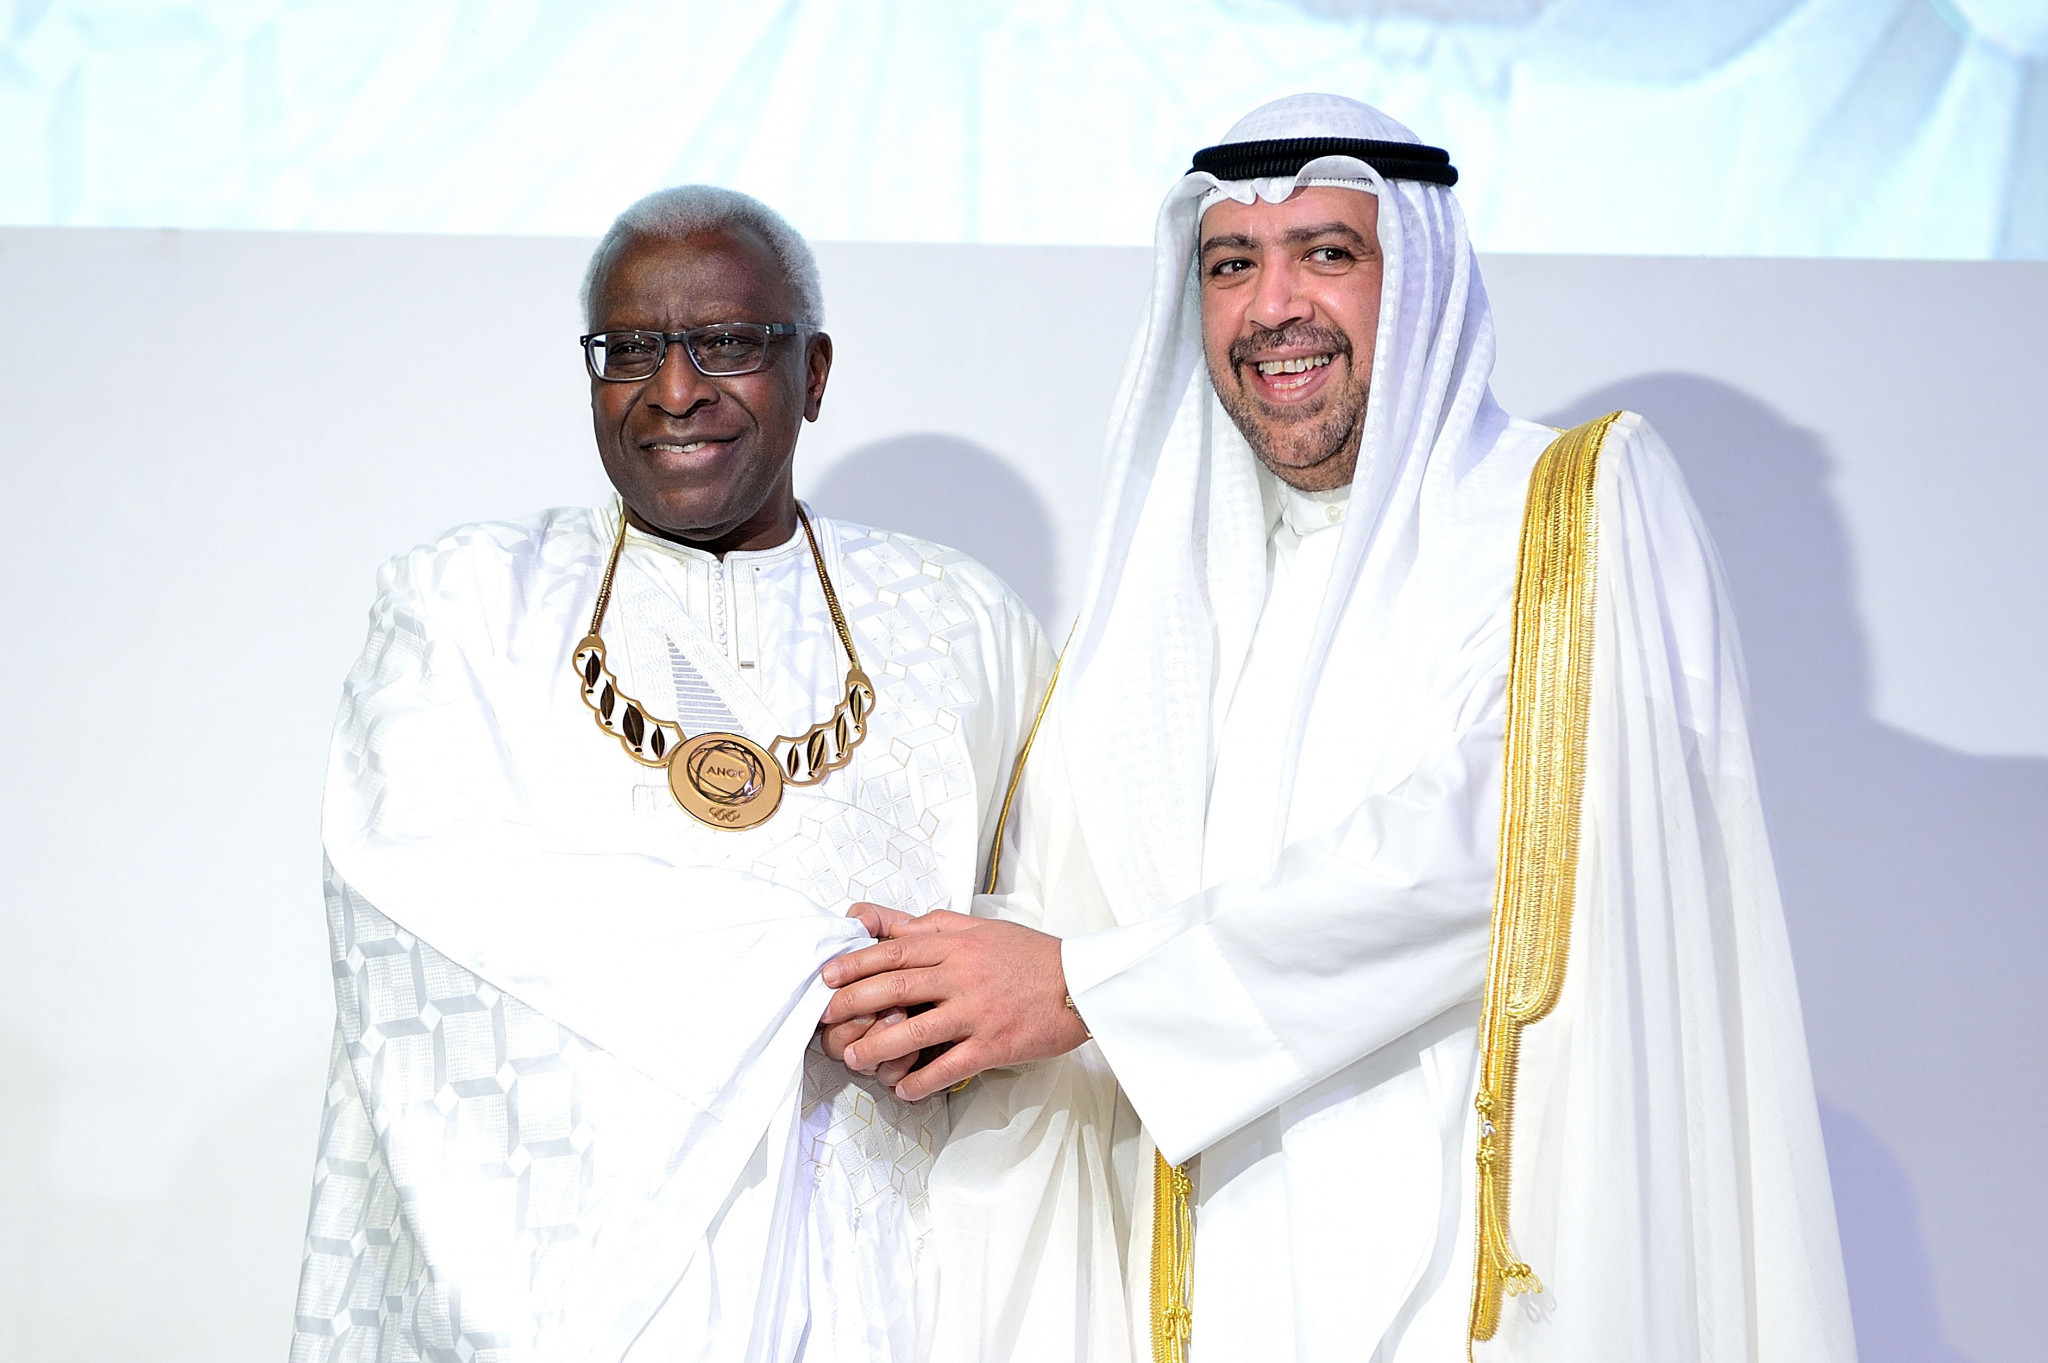 Lamine Diack, left, pictured with Sheikh Ahmad at the 2014 ANOC General Assembly in Bangkok ©Getty Images